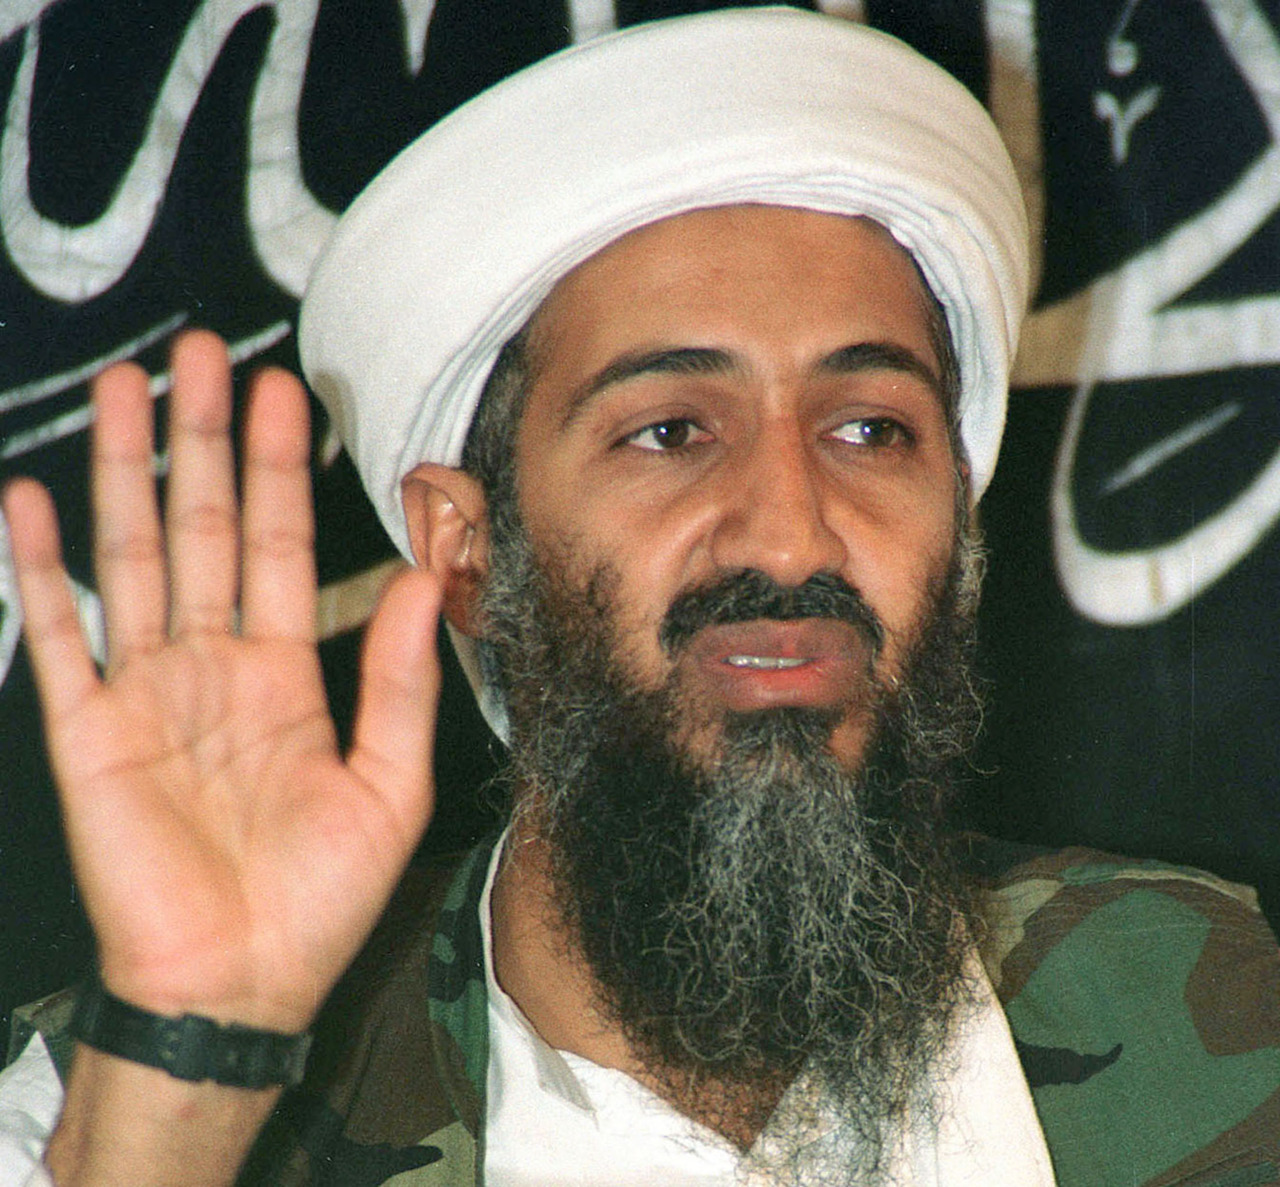 "Al Qaeda leader Osama bin Laden was not the ""puppet master"" of jihadi groups around the world and was burdened by what he saw as their ""incompetence,"" according to an analysis of documents seized from his hideout in Pakistan. The Combating Terrorism Center, a privately funded research center at the U.S. Military Academy at West Point, posted on its website on Thursday some declassified documents taken in the raid on bin Laden's house in Abbottabad in which he was killed by U.S. forces a year ago. (http:www.ctc.usma.edu) ""On the basis of the 17 declassified documents, Bin Ladin was not, as many thought, the puppet master pulling the strings that set in motion jihadi groups around the world,"" a report on the documents by the Combating Terrorism Center said. ""Bin Ladin was burdened by what he saw as their incompetence."" The center spells bin Laden's name as Bin Ladin. READ MORE: US report on seized documents from Abbottabad compound"